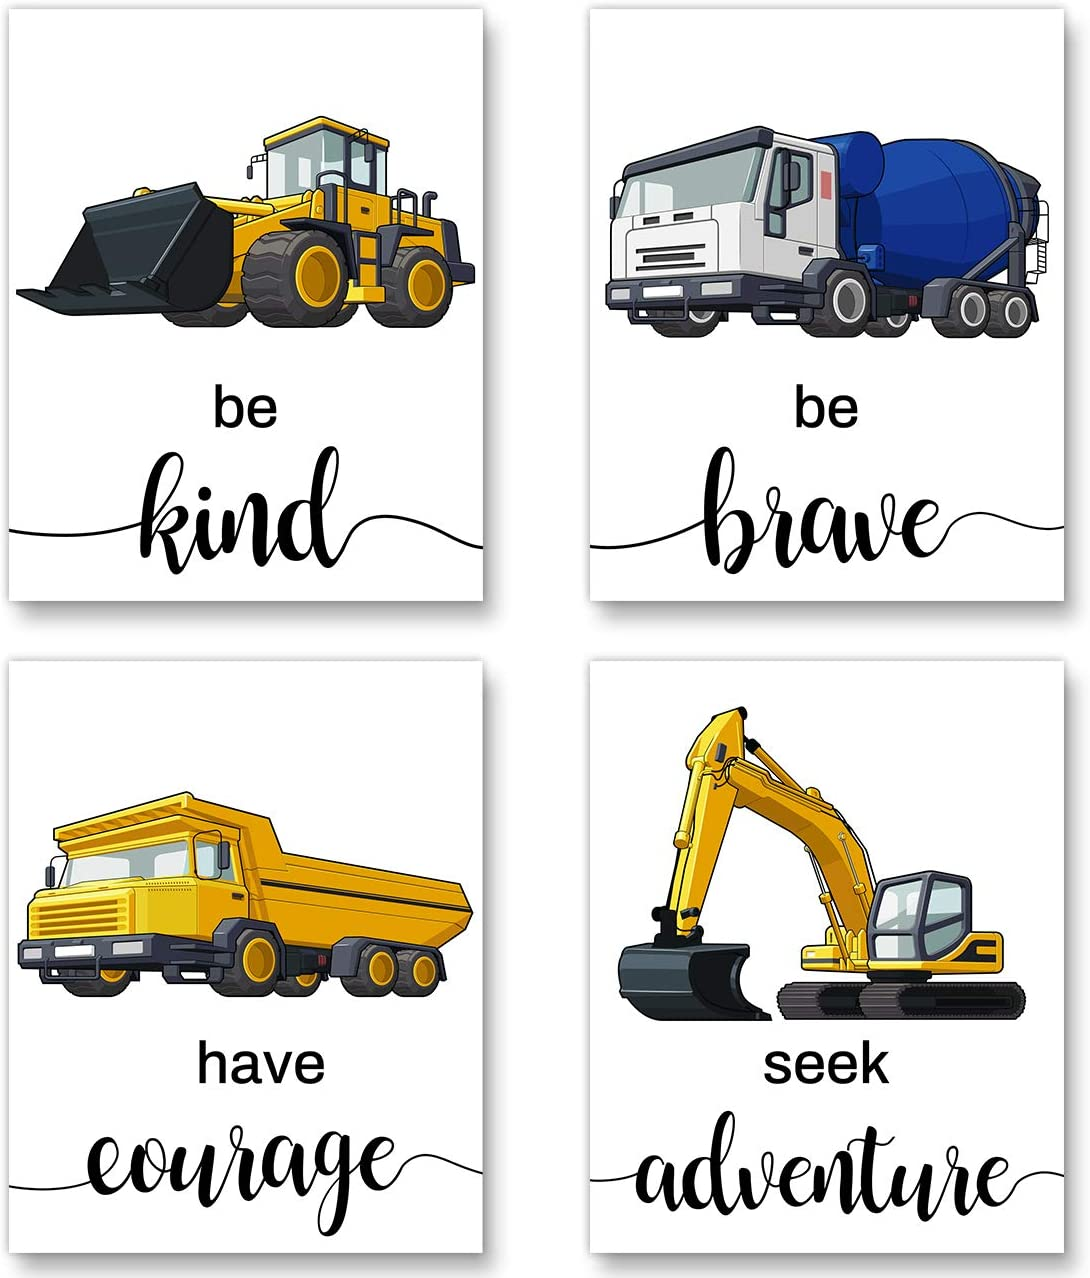 Construction Truck Picture Cartoon Construction Transport Vehicles Wall Art - Canvas Funny&Inspirational Words Poster Painting for Nursery or Kids Boy Room Home Decor - Set of 4 Posters (Unframed,8